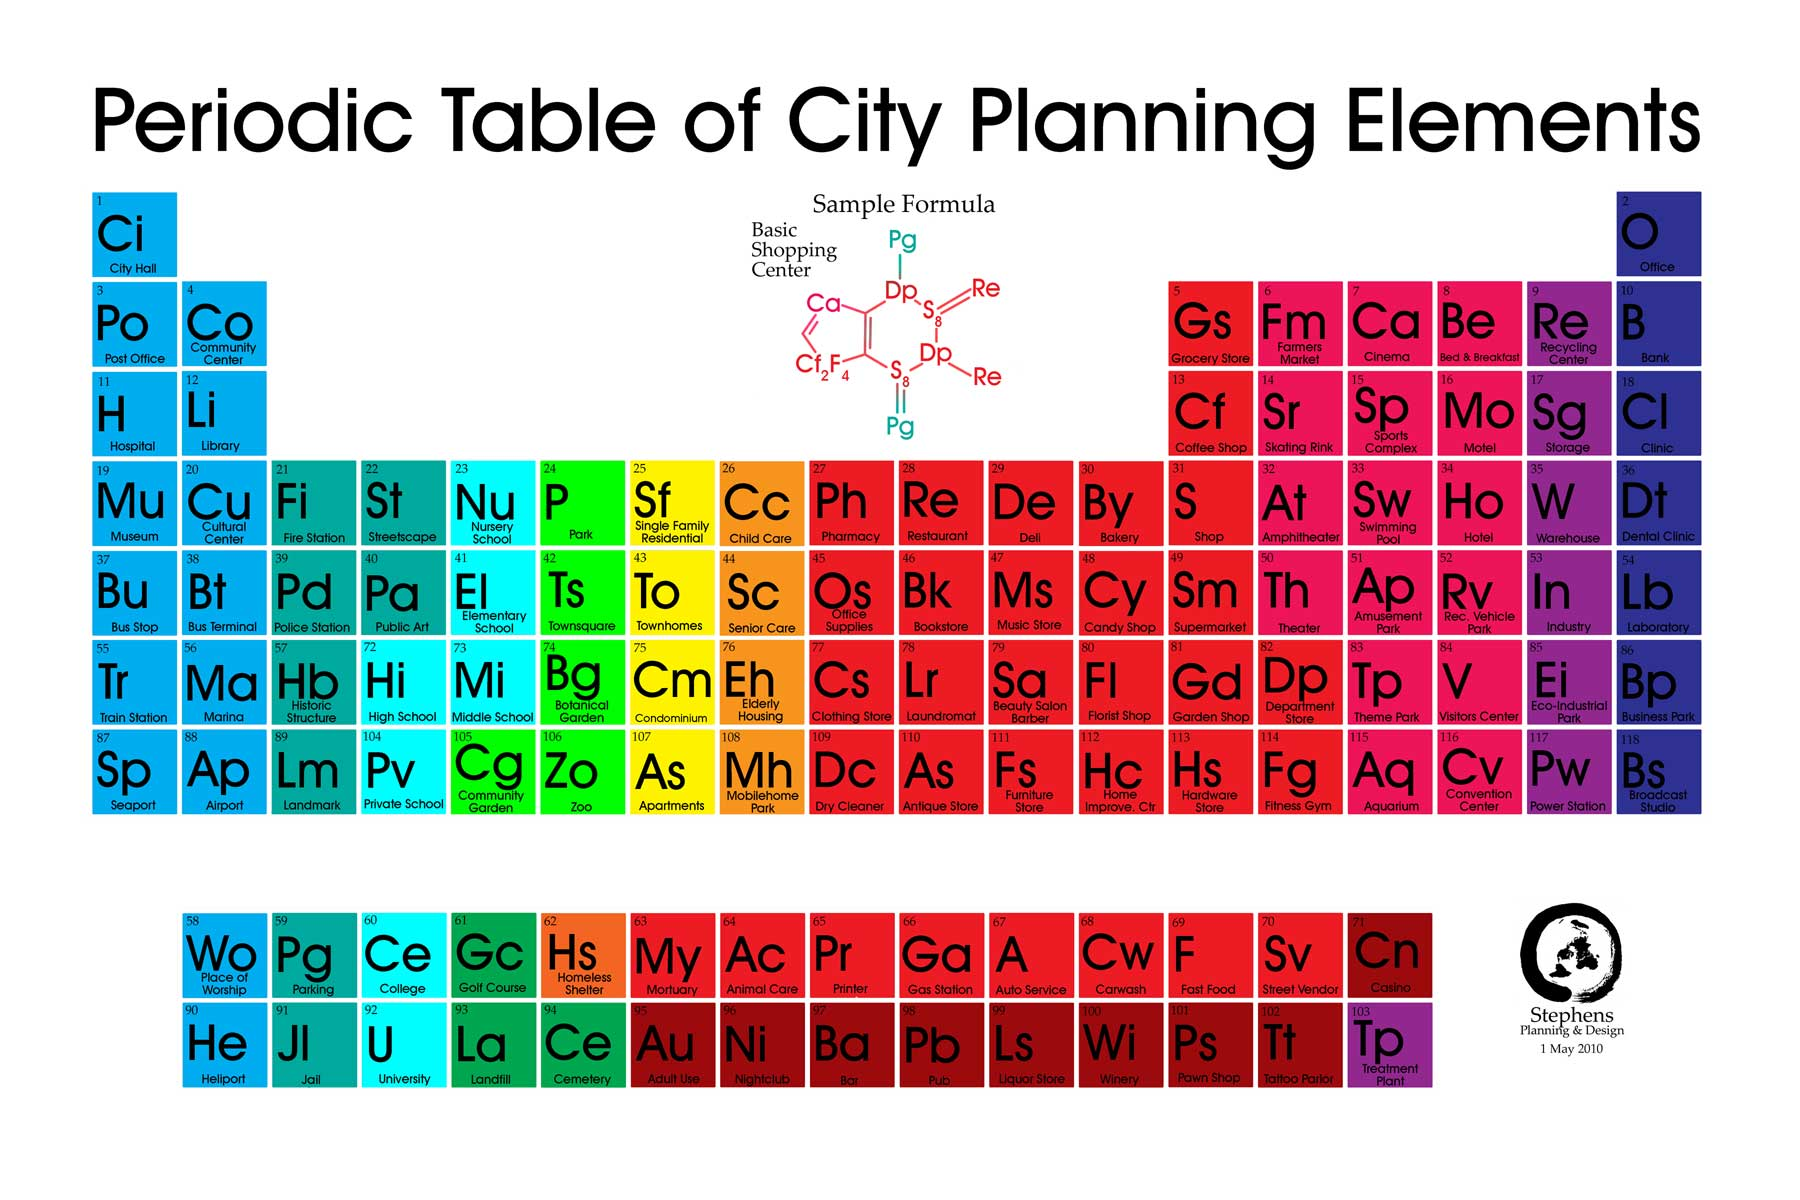 New periodic table another name for row periodic periodic row table another name for 3 pictures most elements recent to periodic on of pictures urtaz Choice Image